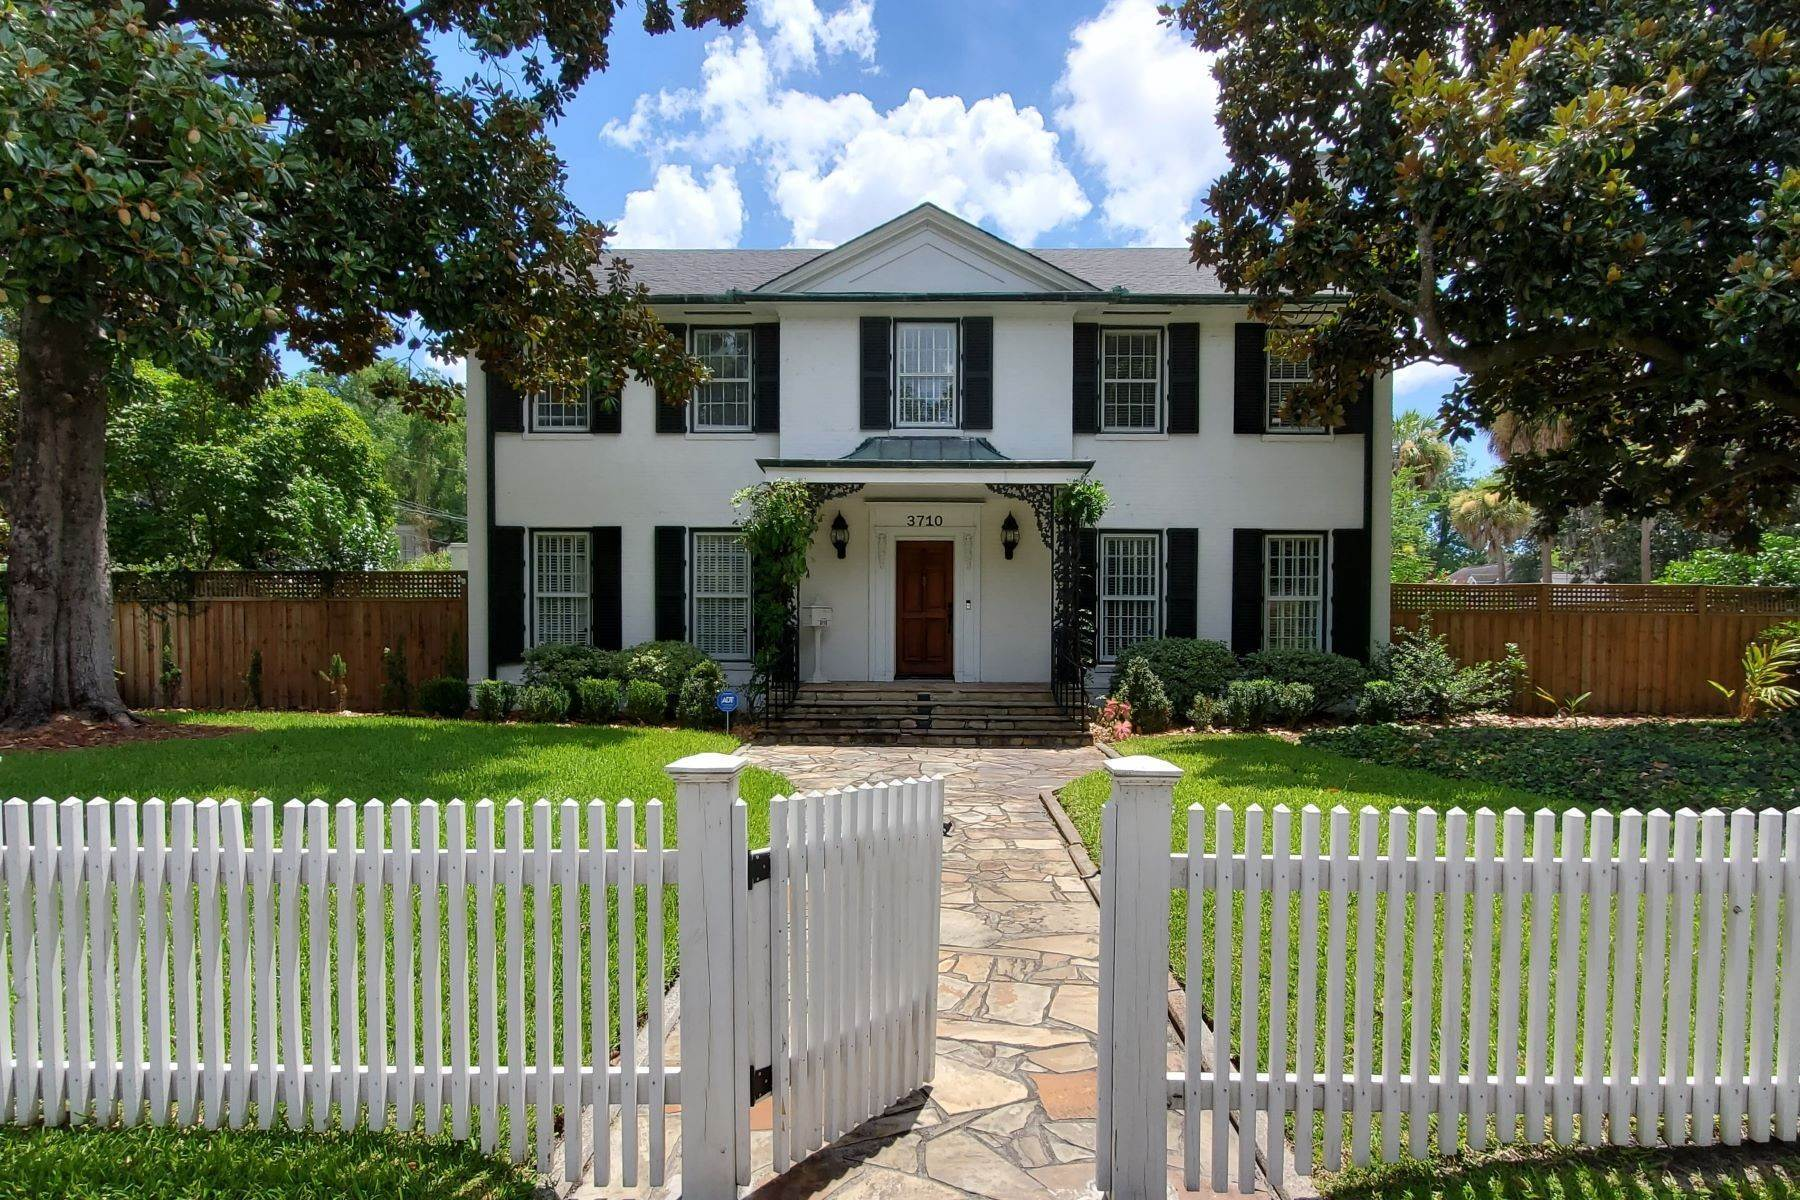 Single Family Homes for Sale at Ardsley Park Estate on Adams Park designed by John C LeBey 3710 Abercorn Street Savannah, Georgia 31405 United States